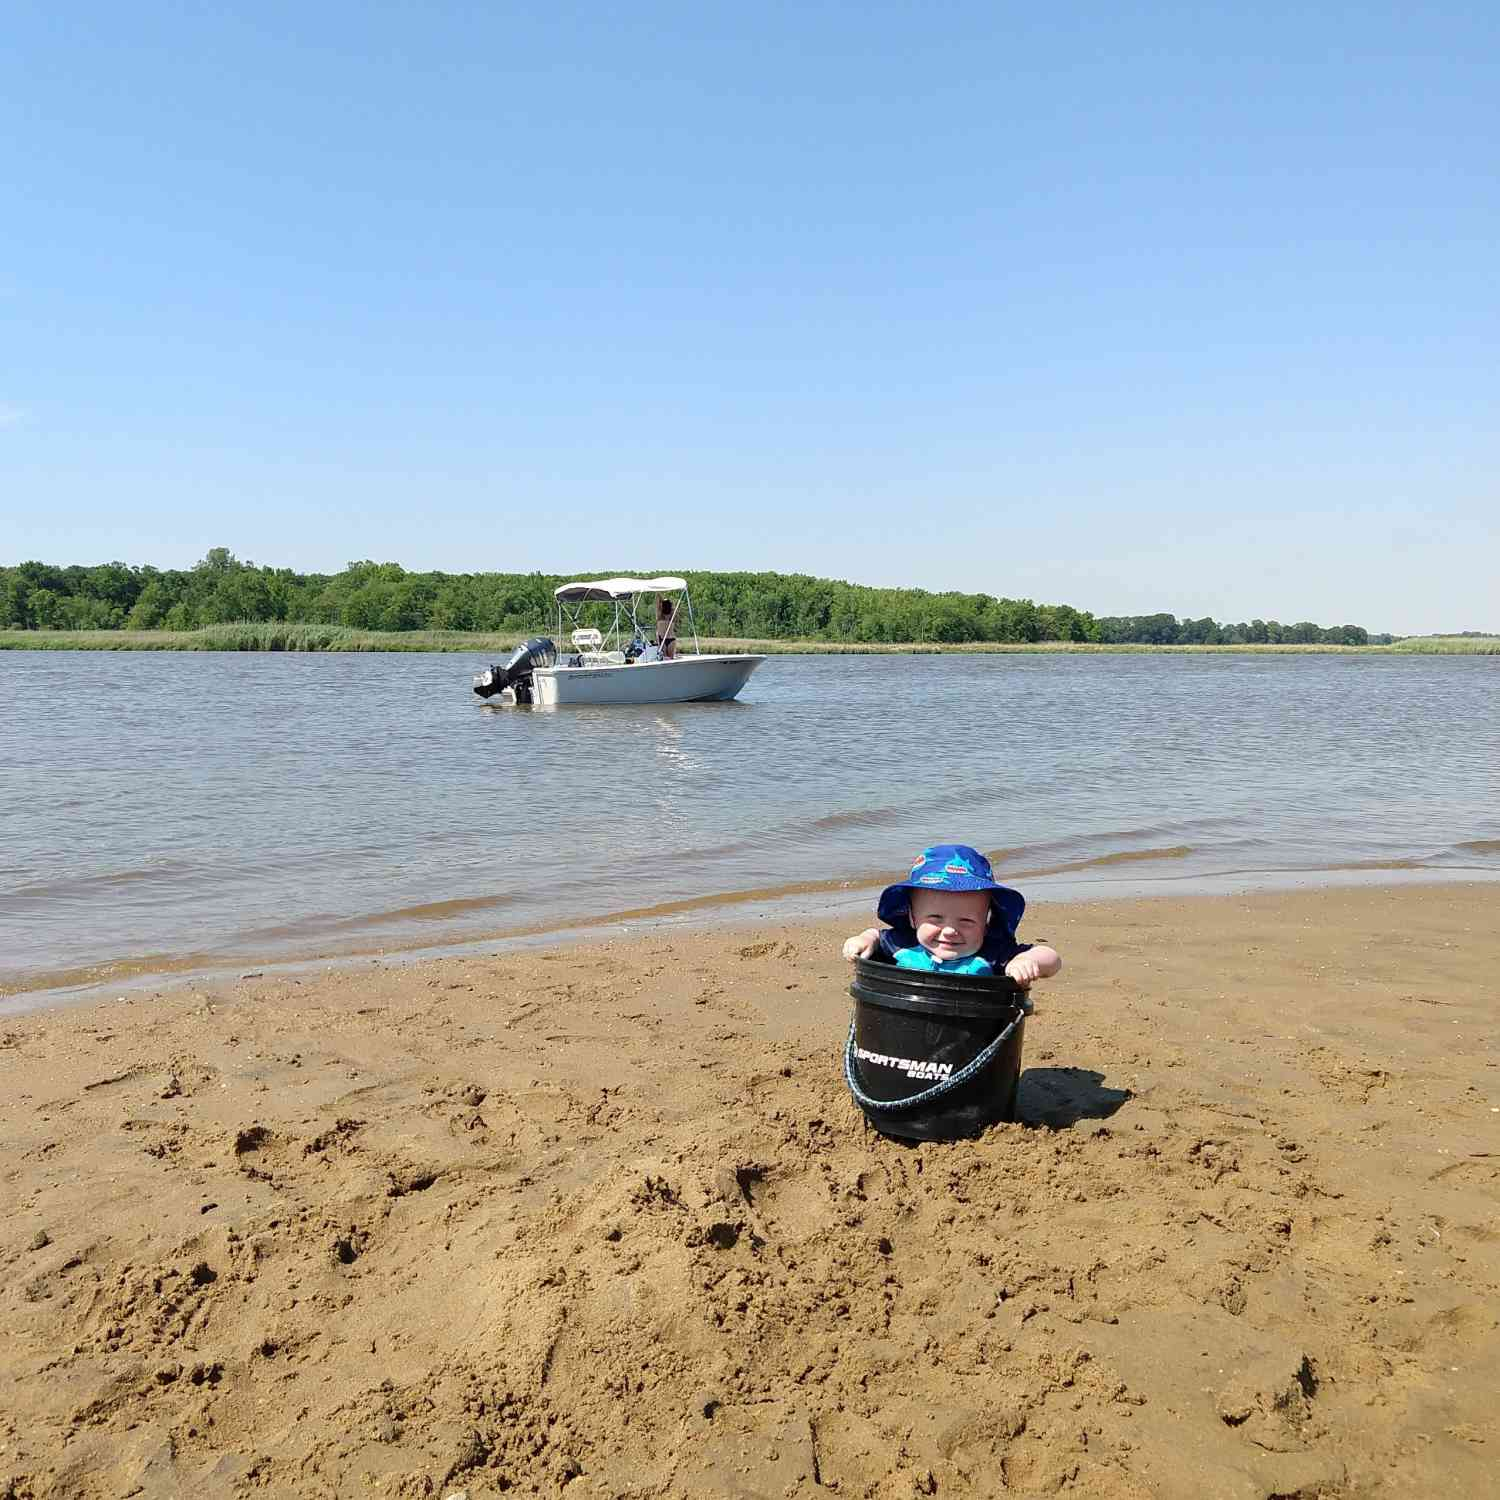 Title: 1st Birthday on the Chester River, MD - On board their Sportsman Island Reef 17 Center Console - Location: Chester River, MD. Participating in the Photo Contest #SportsmanJune2020